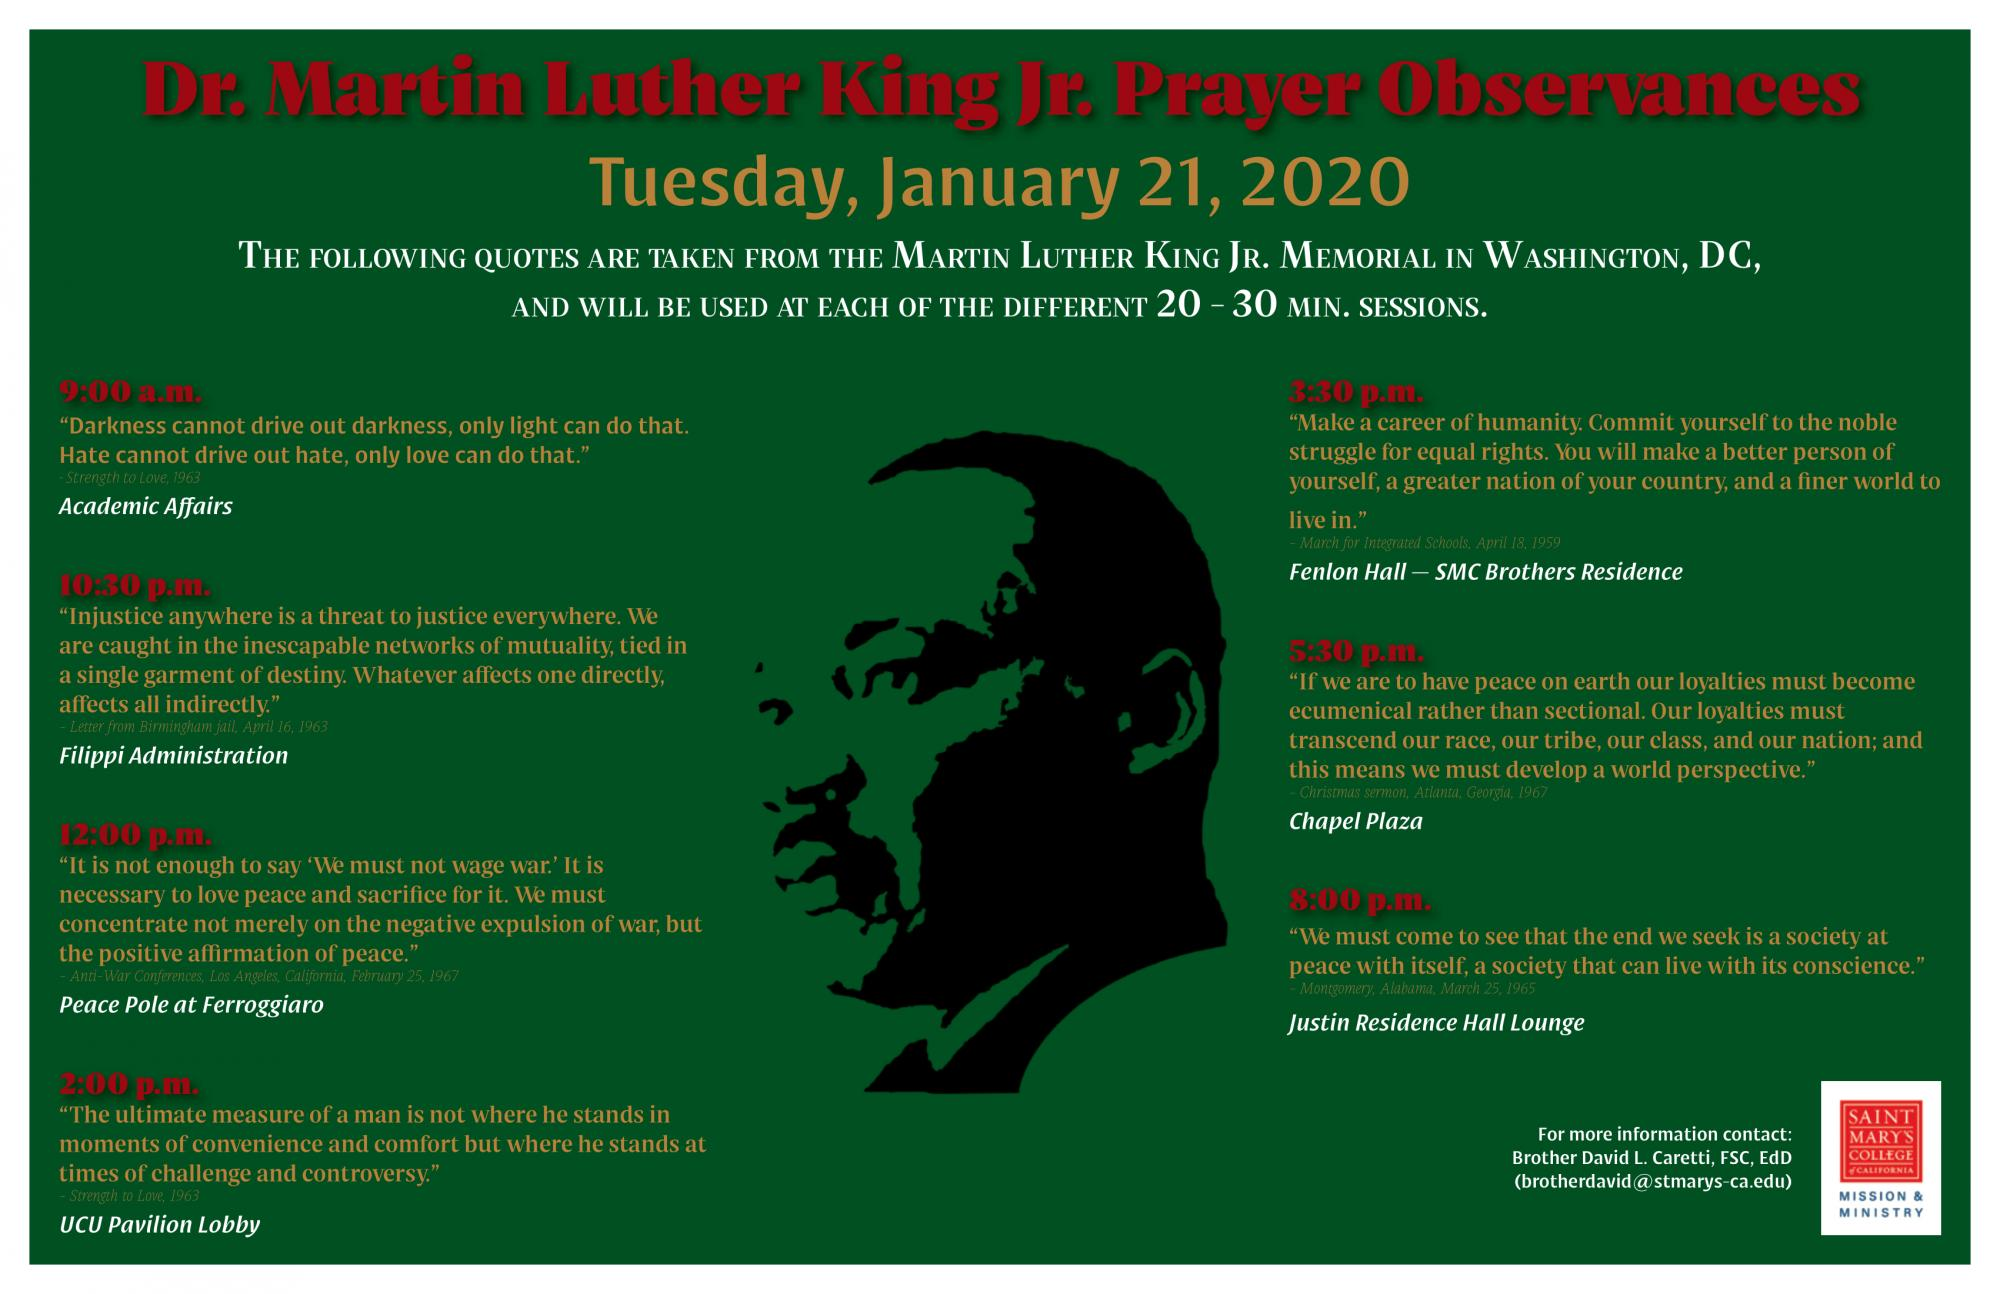 MLK Prayer Observances schedule